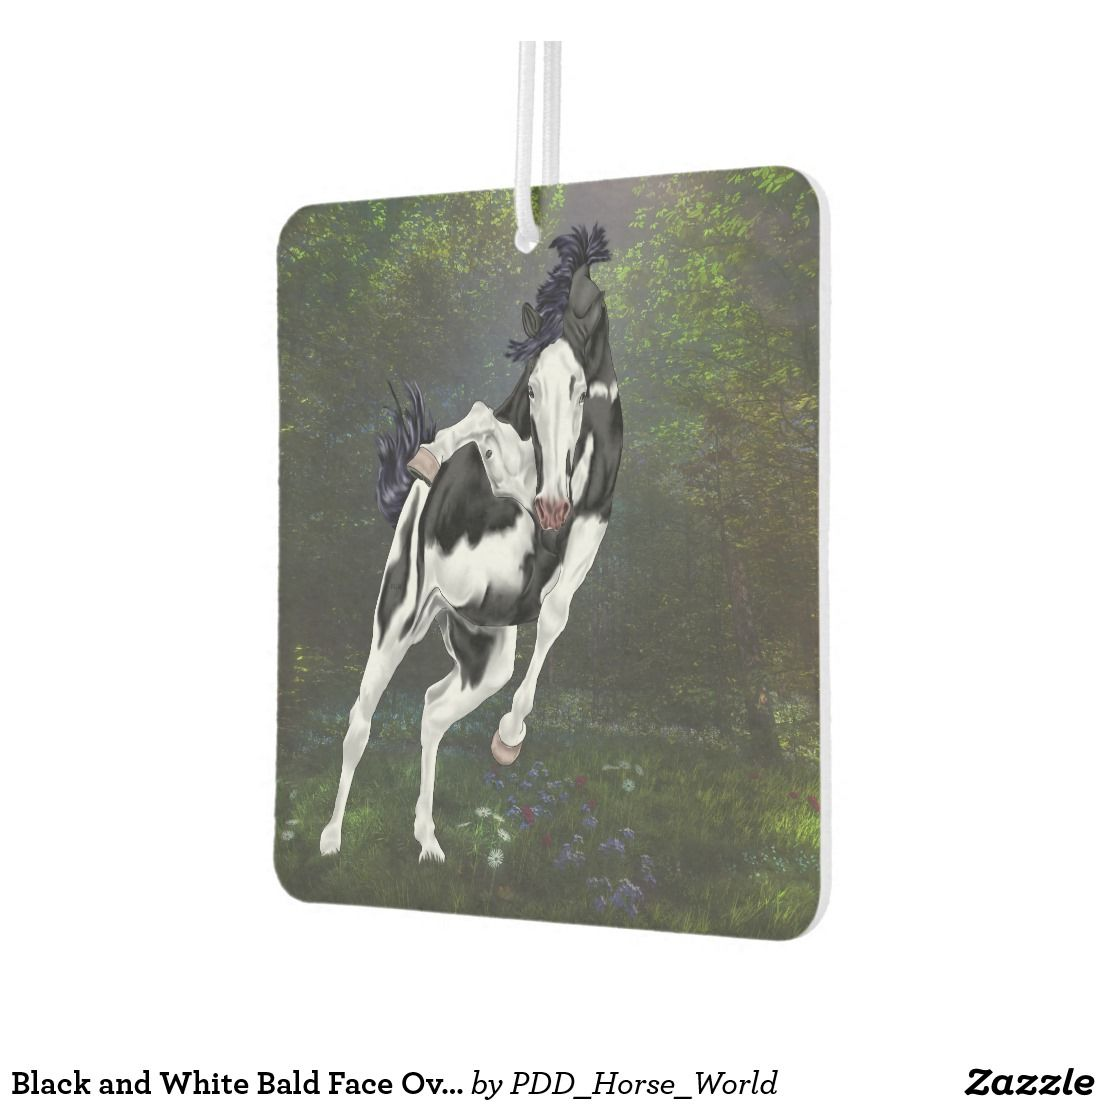 Black And White Bald Face Overo Paint Horse Car Air Freshener Painting